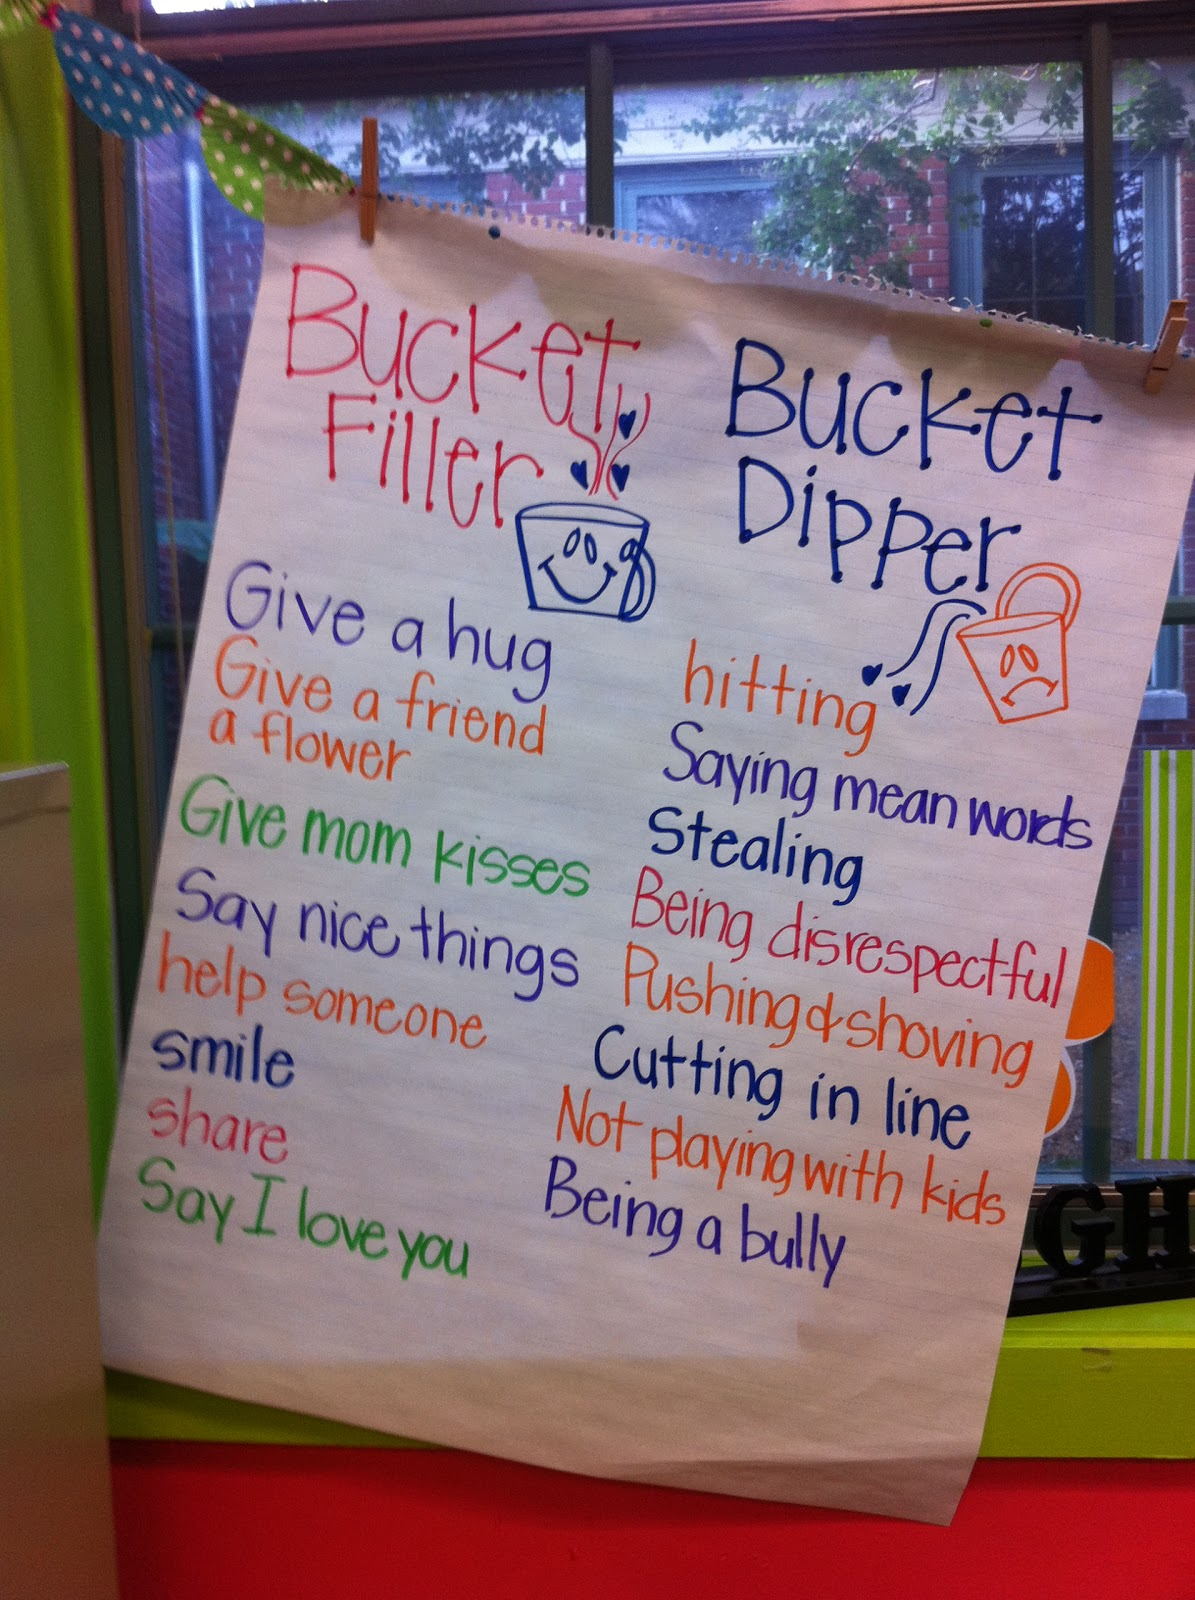 how to say bucket in russian